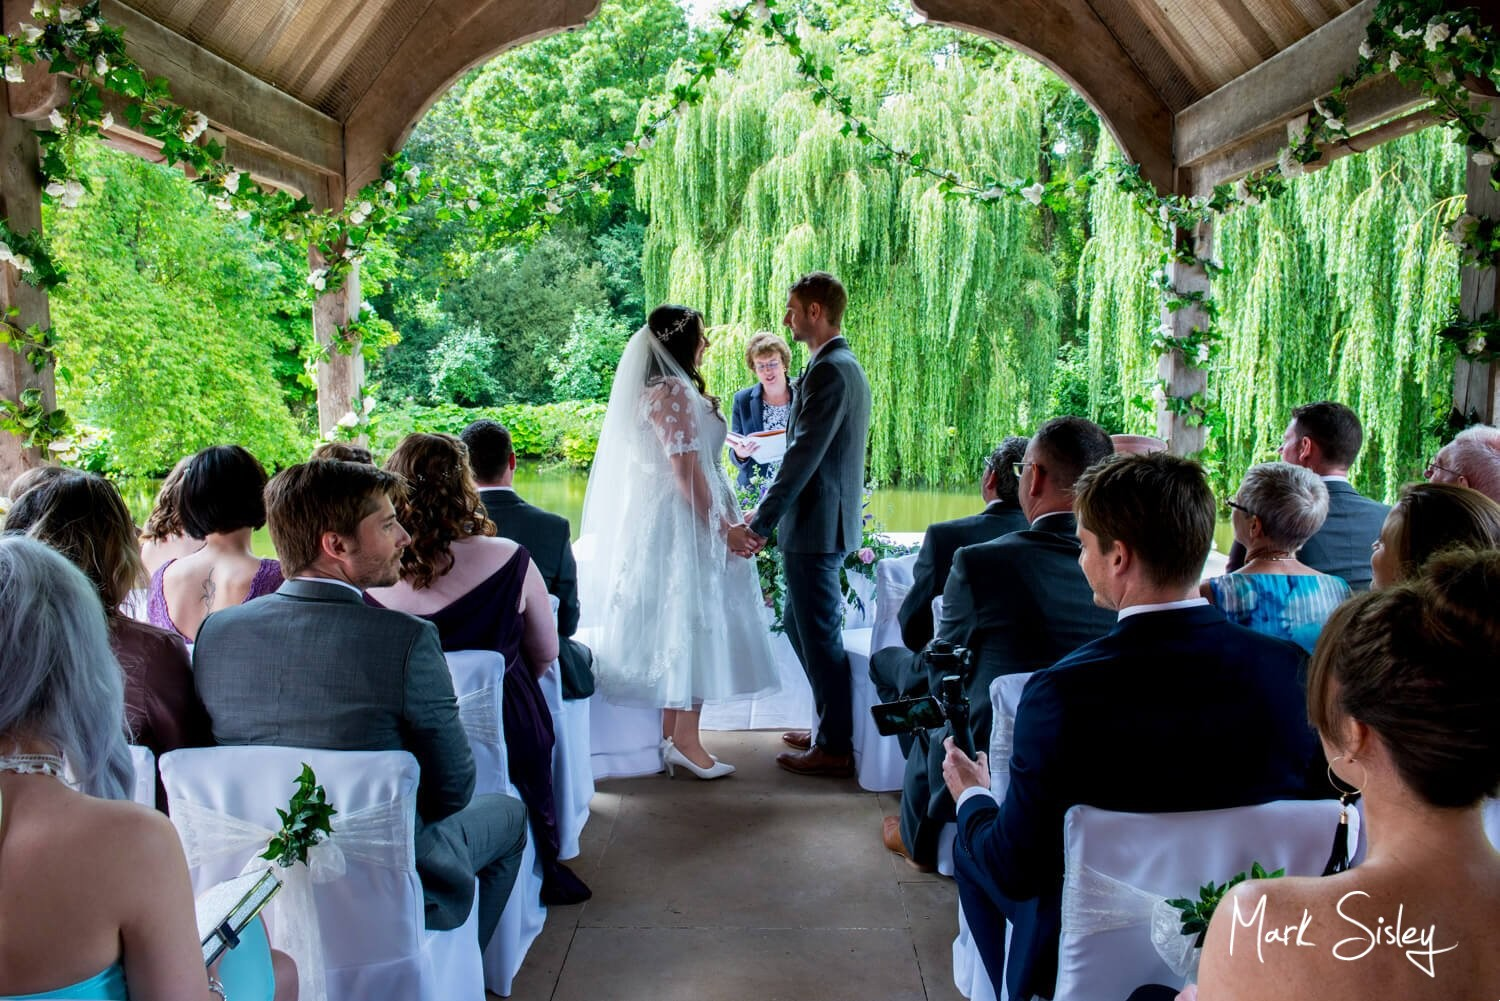 Dairy Waddesdon wedding photos of the civil ceremony in progress outdoors